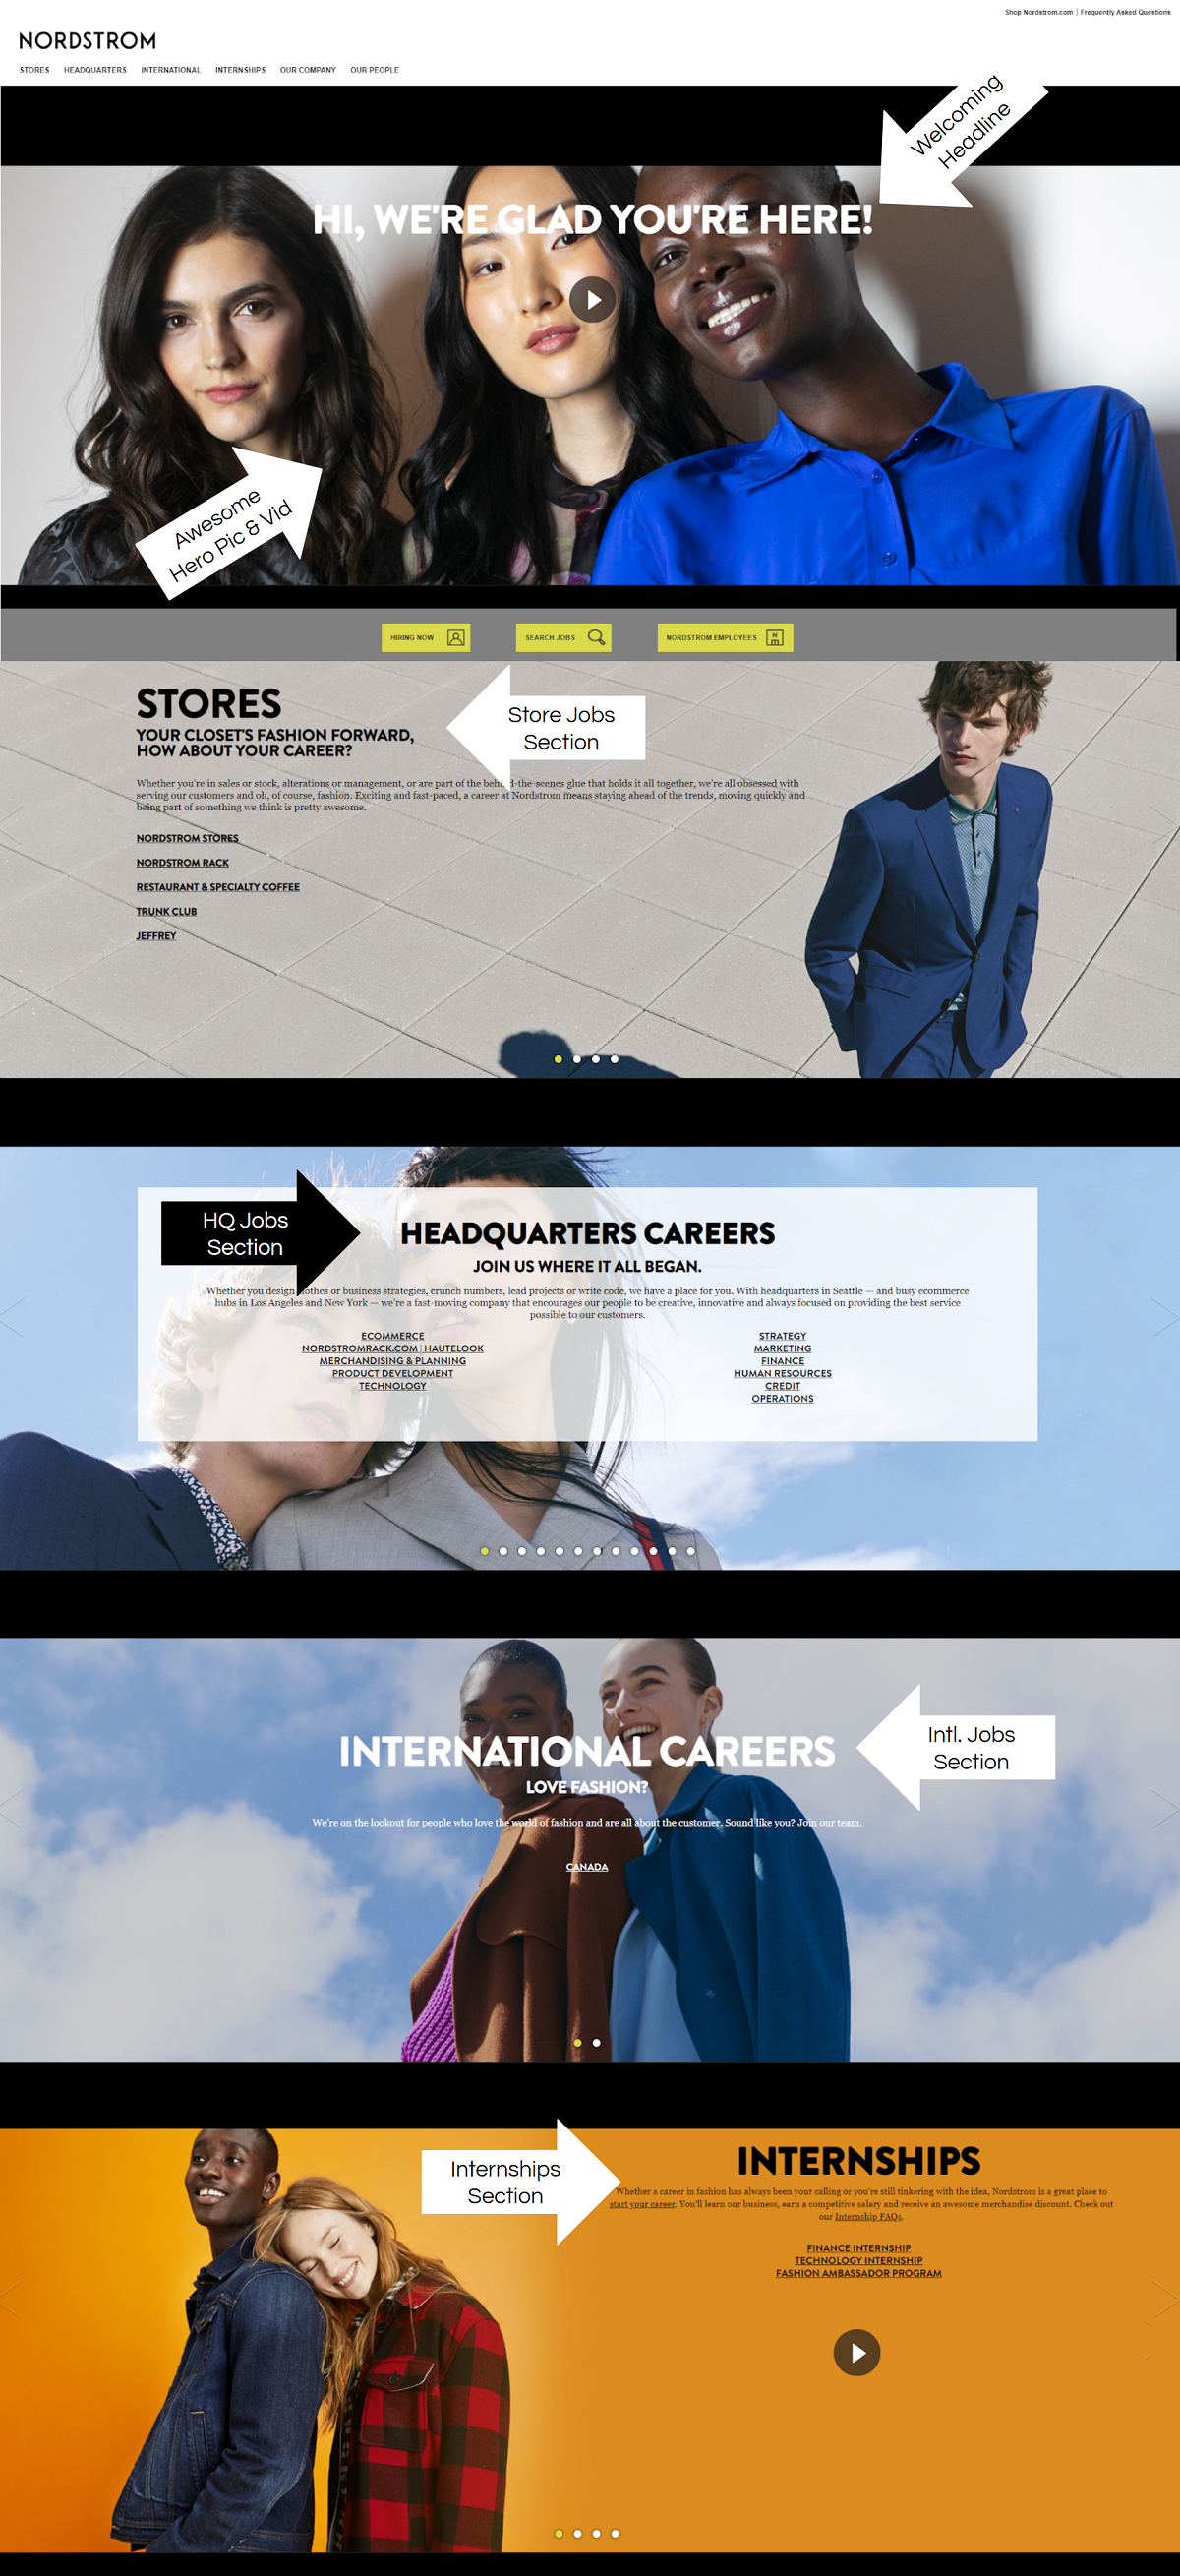 nordstrom company career page